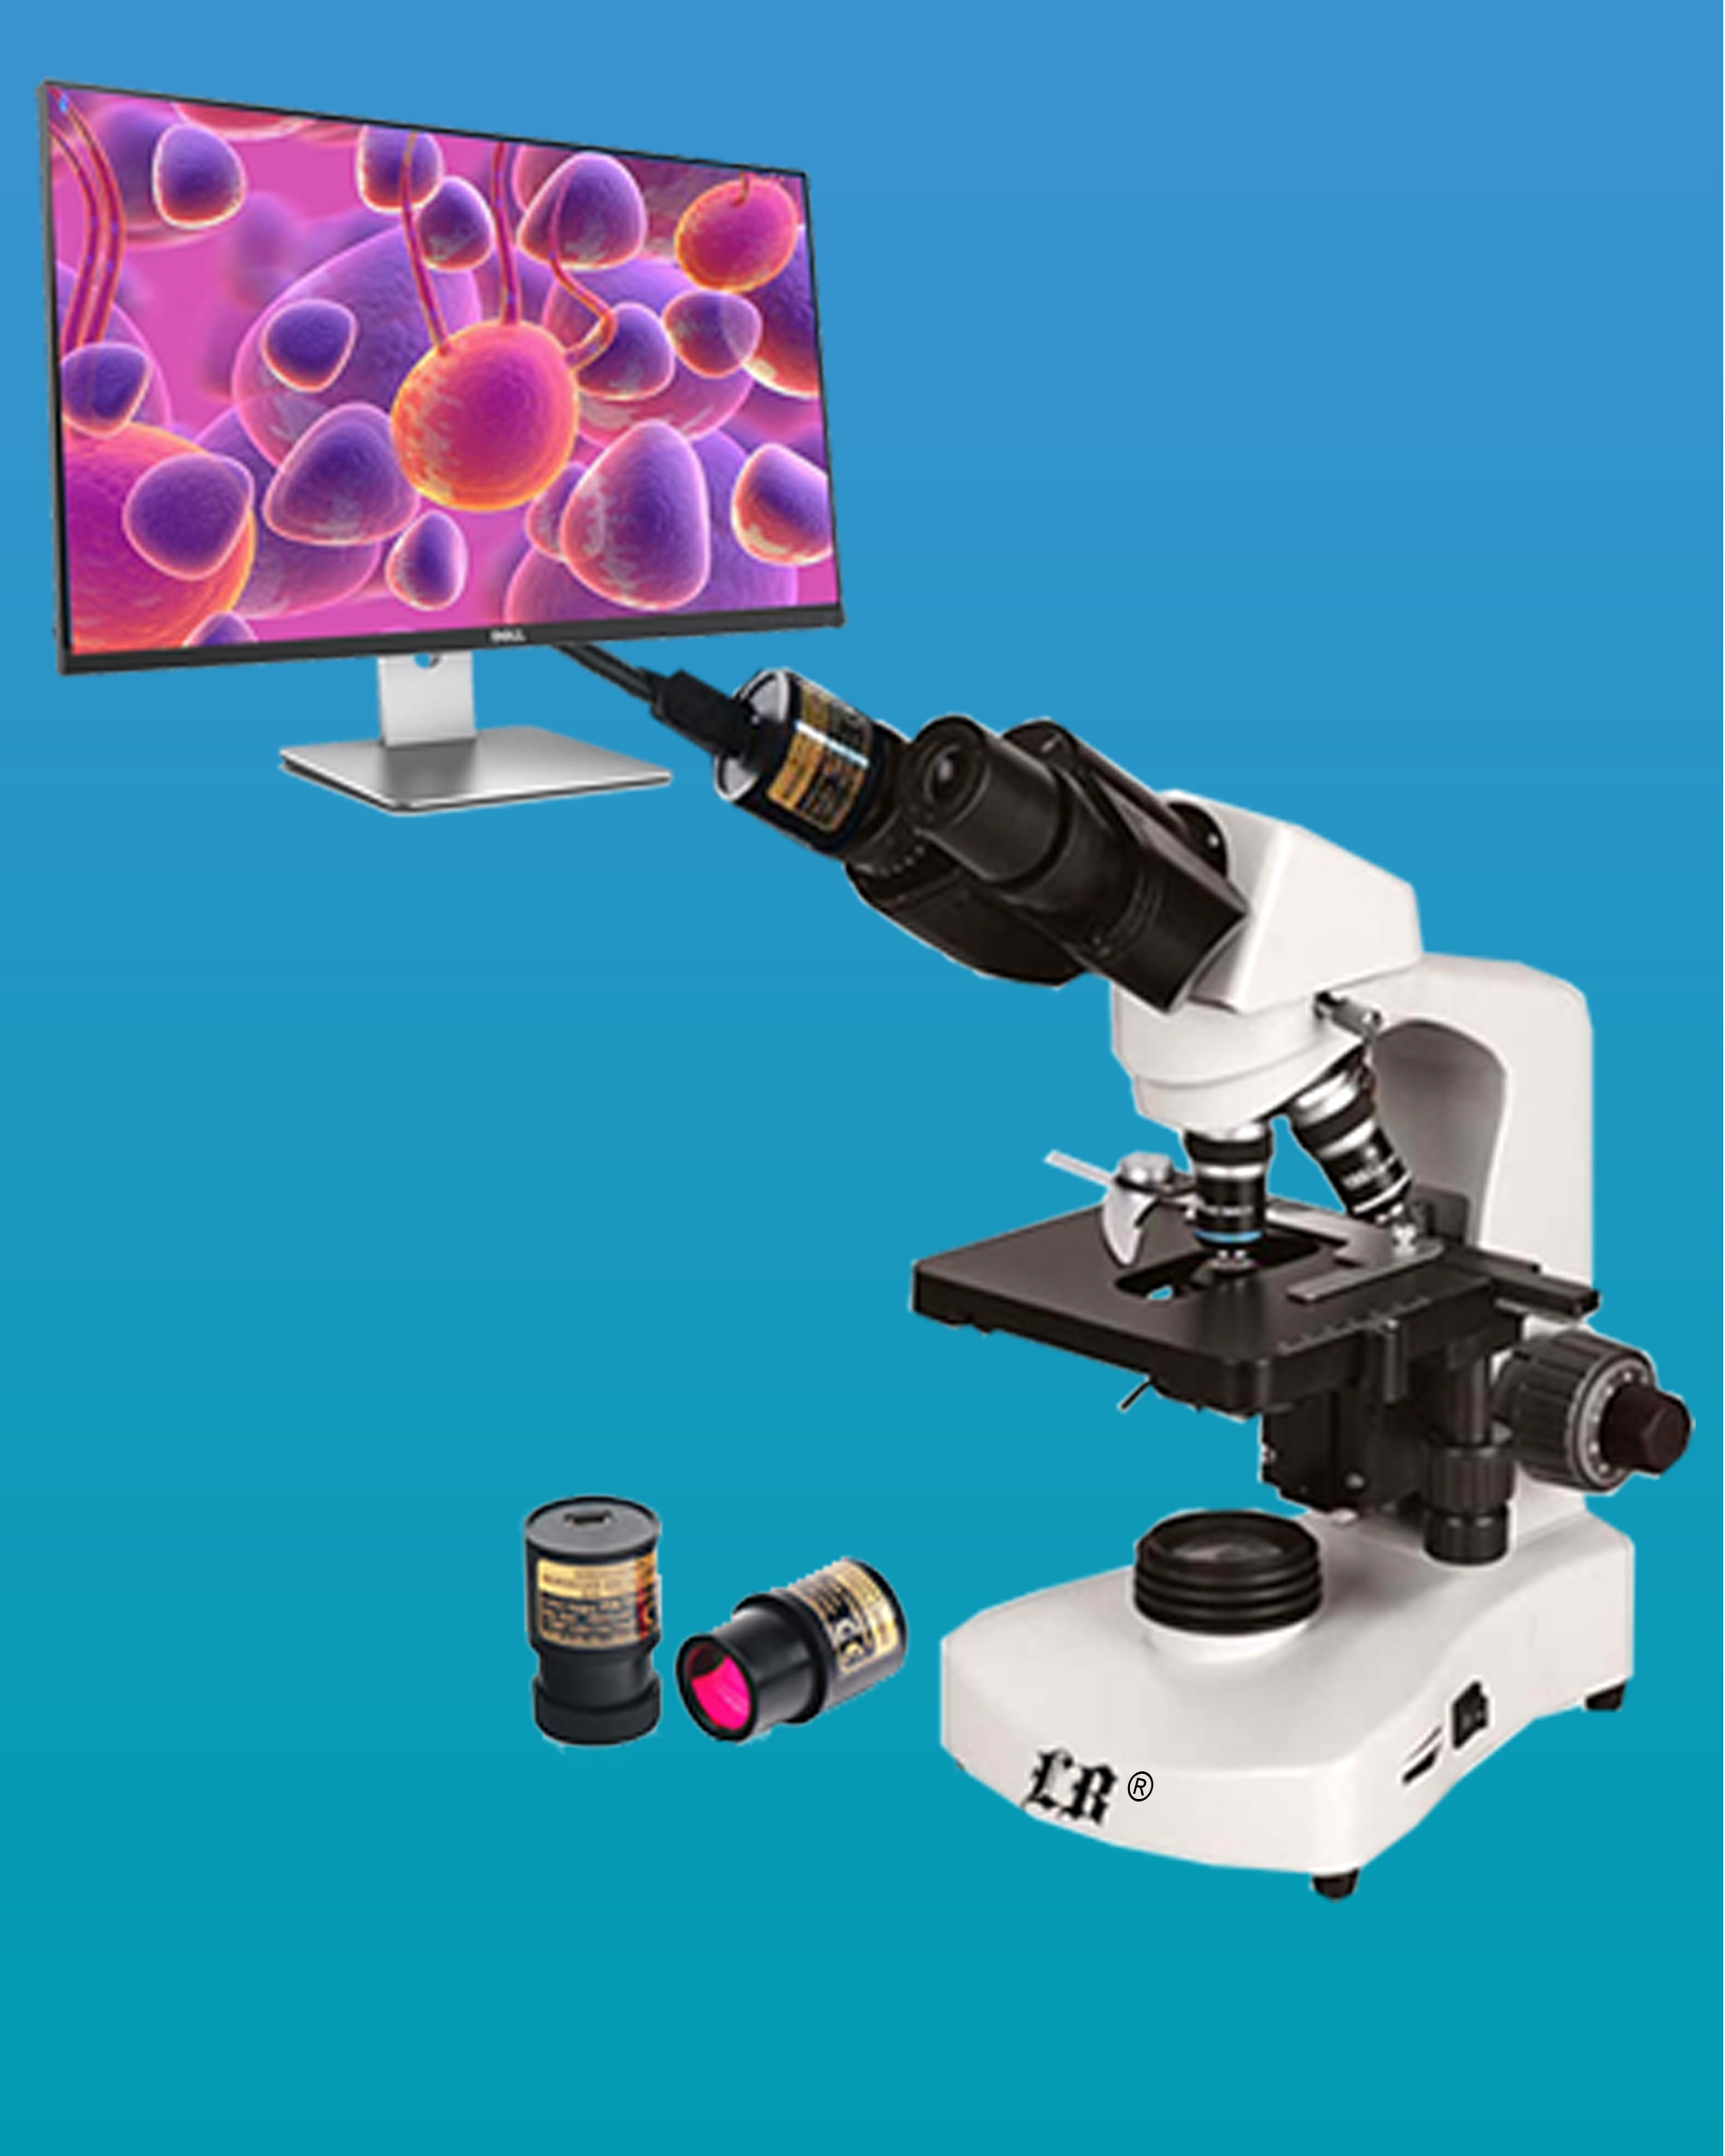 [LB-229] Compound LCD Digital Biological Microscope